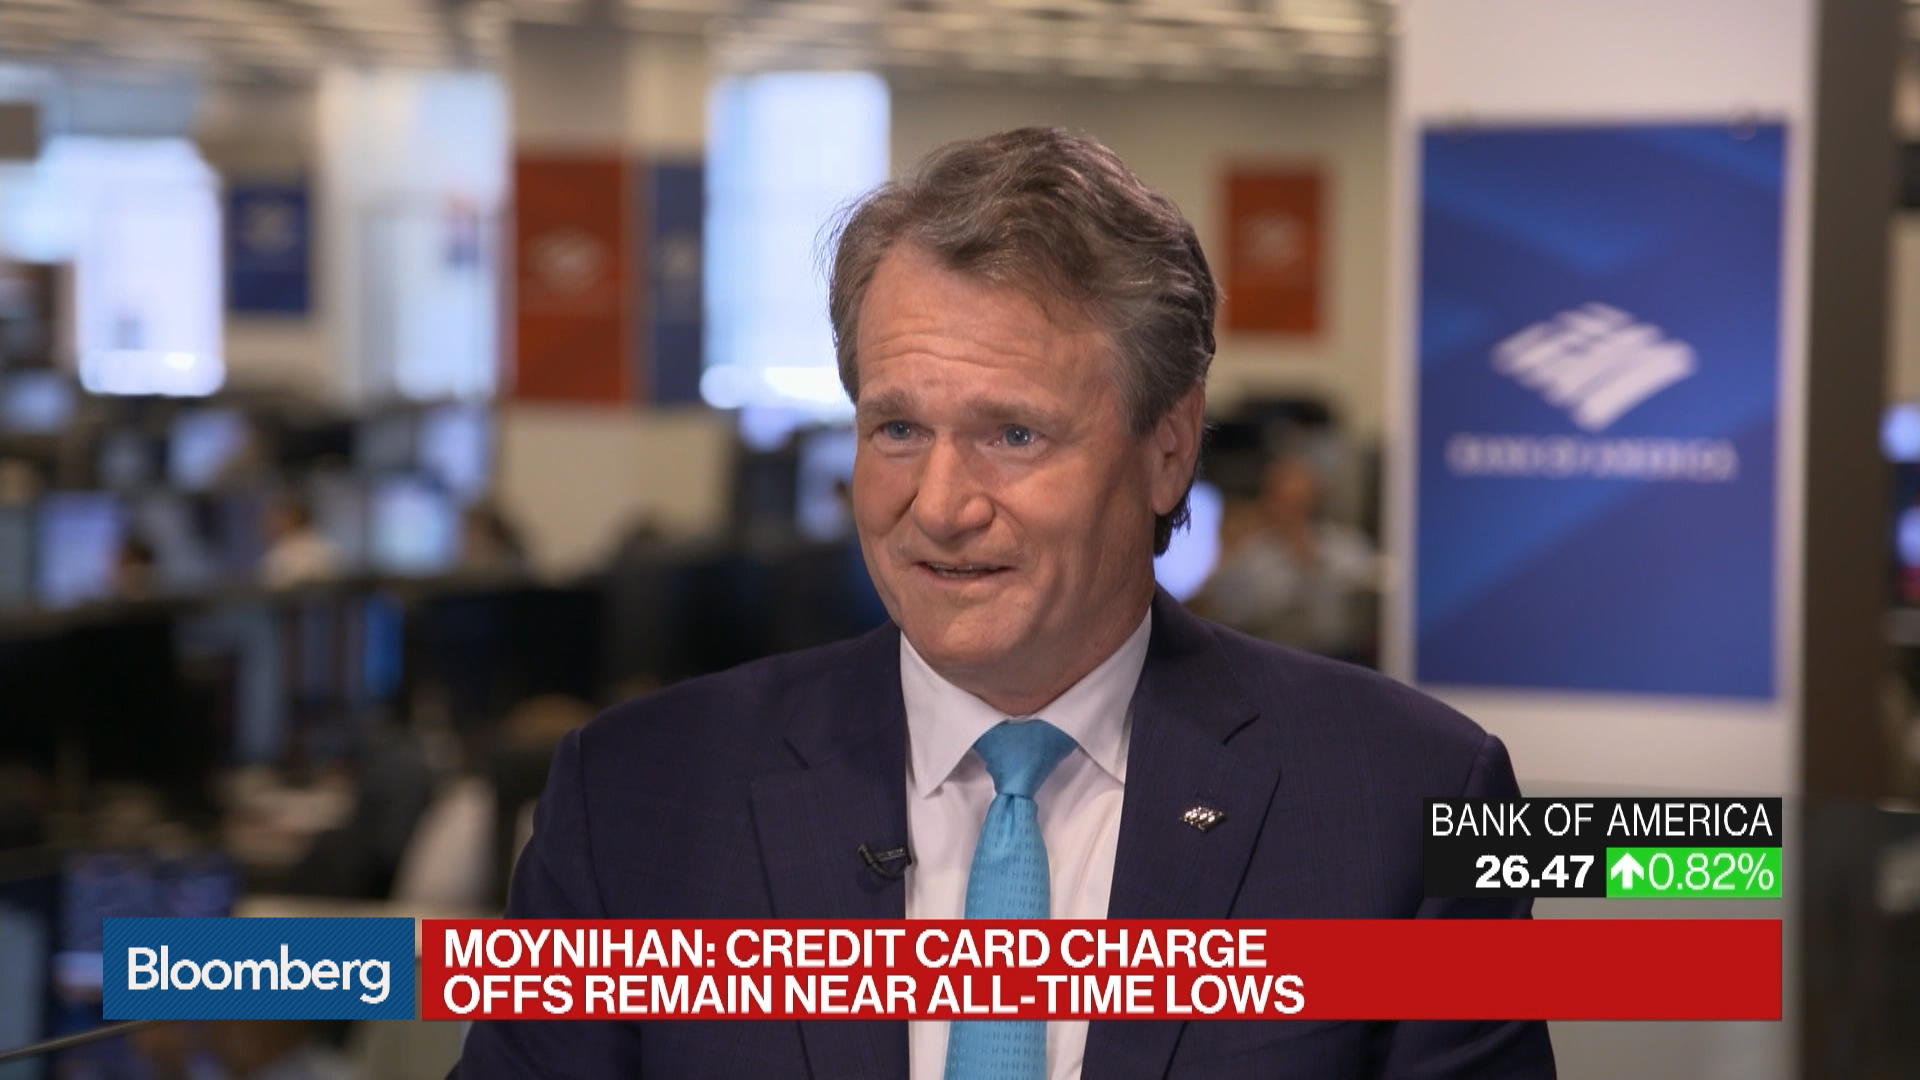 BofA's Moynihan Sees 'Fear of Recession' as Biggest Recession Risk